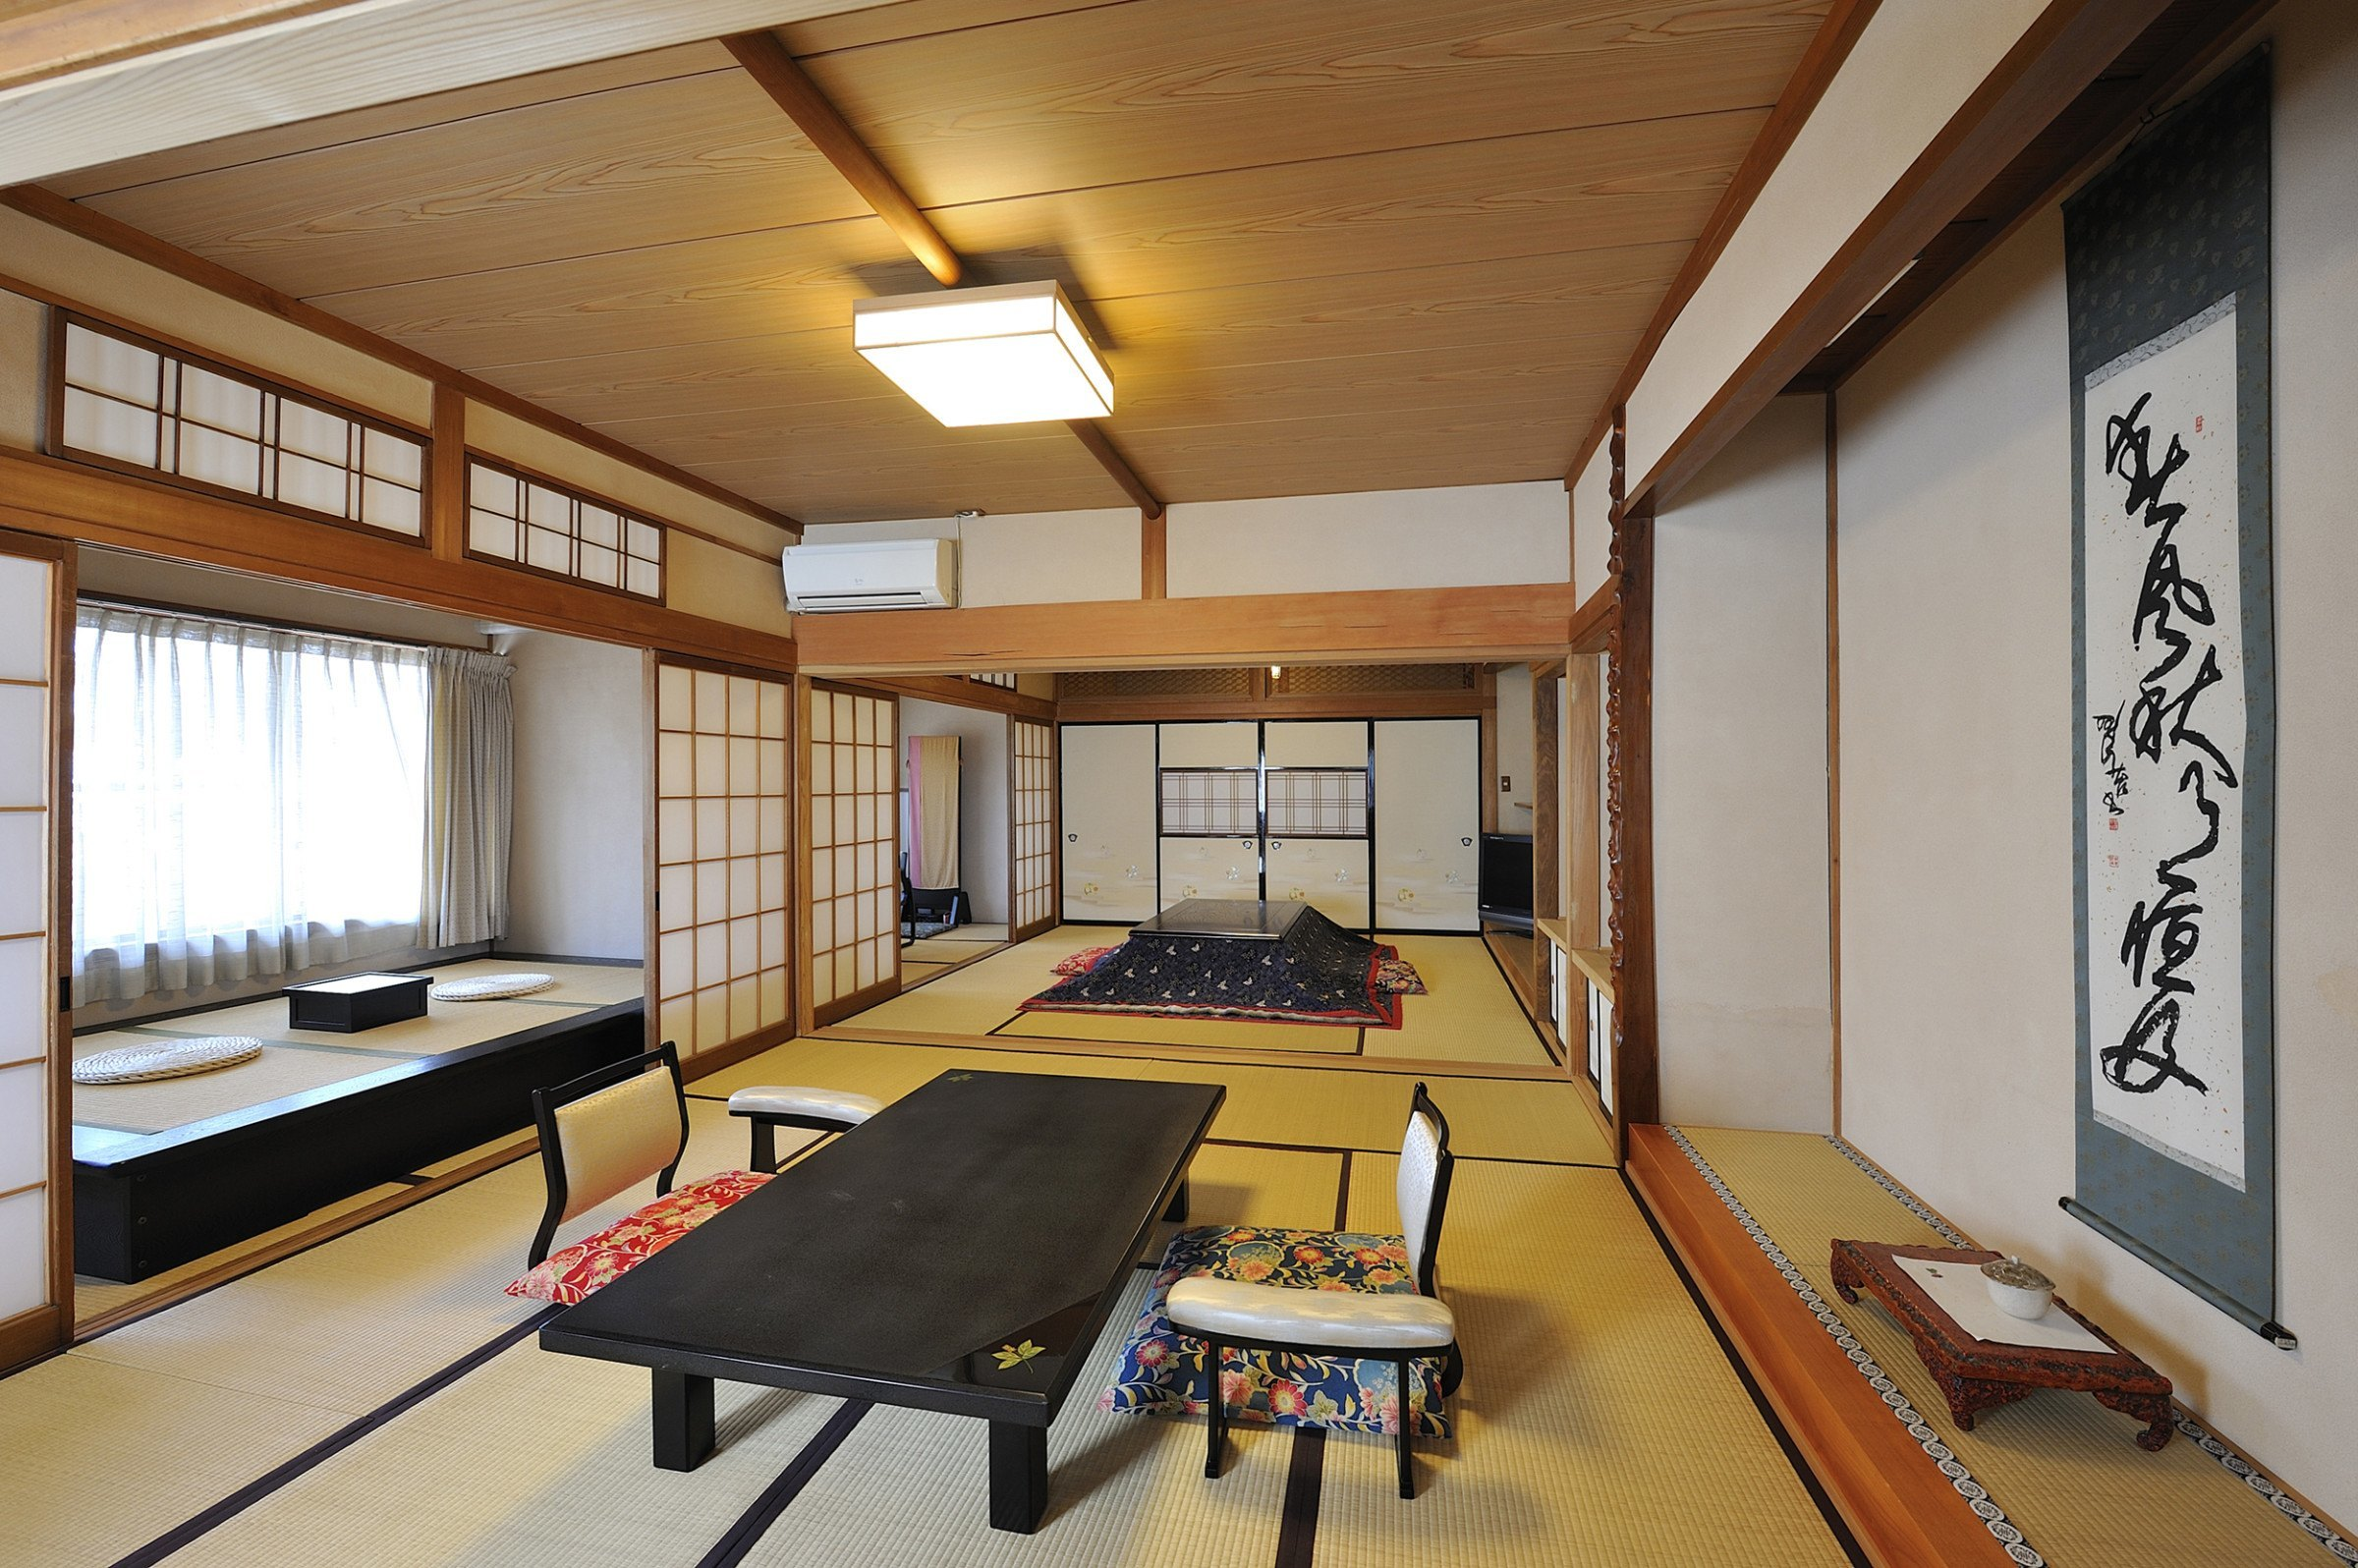 Guest suite at the Jinpyokaku